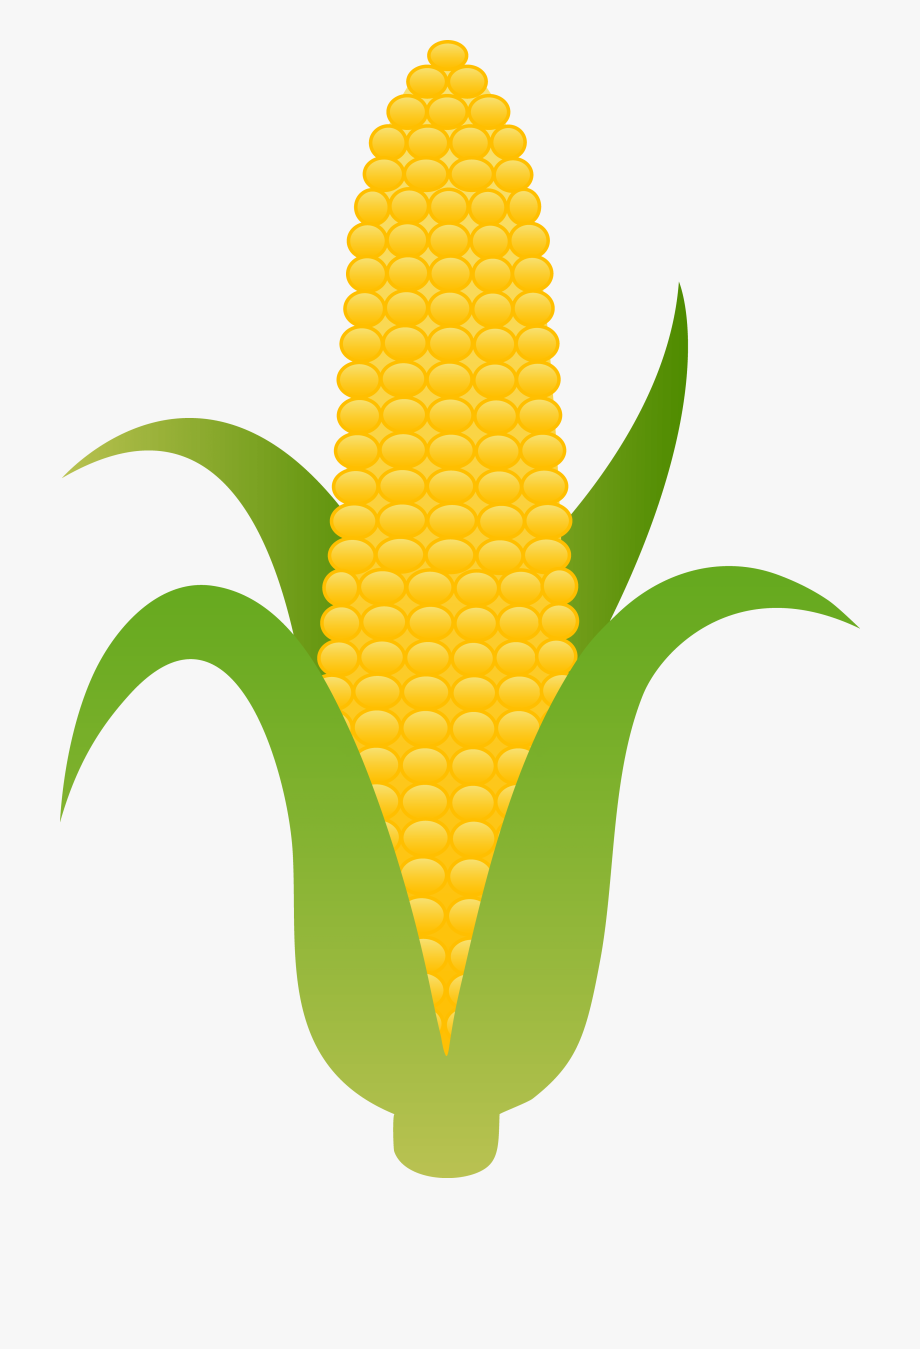 jpg freeuse download Corn clipart. Clip art free images